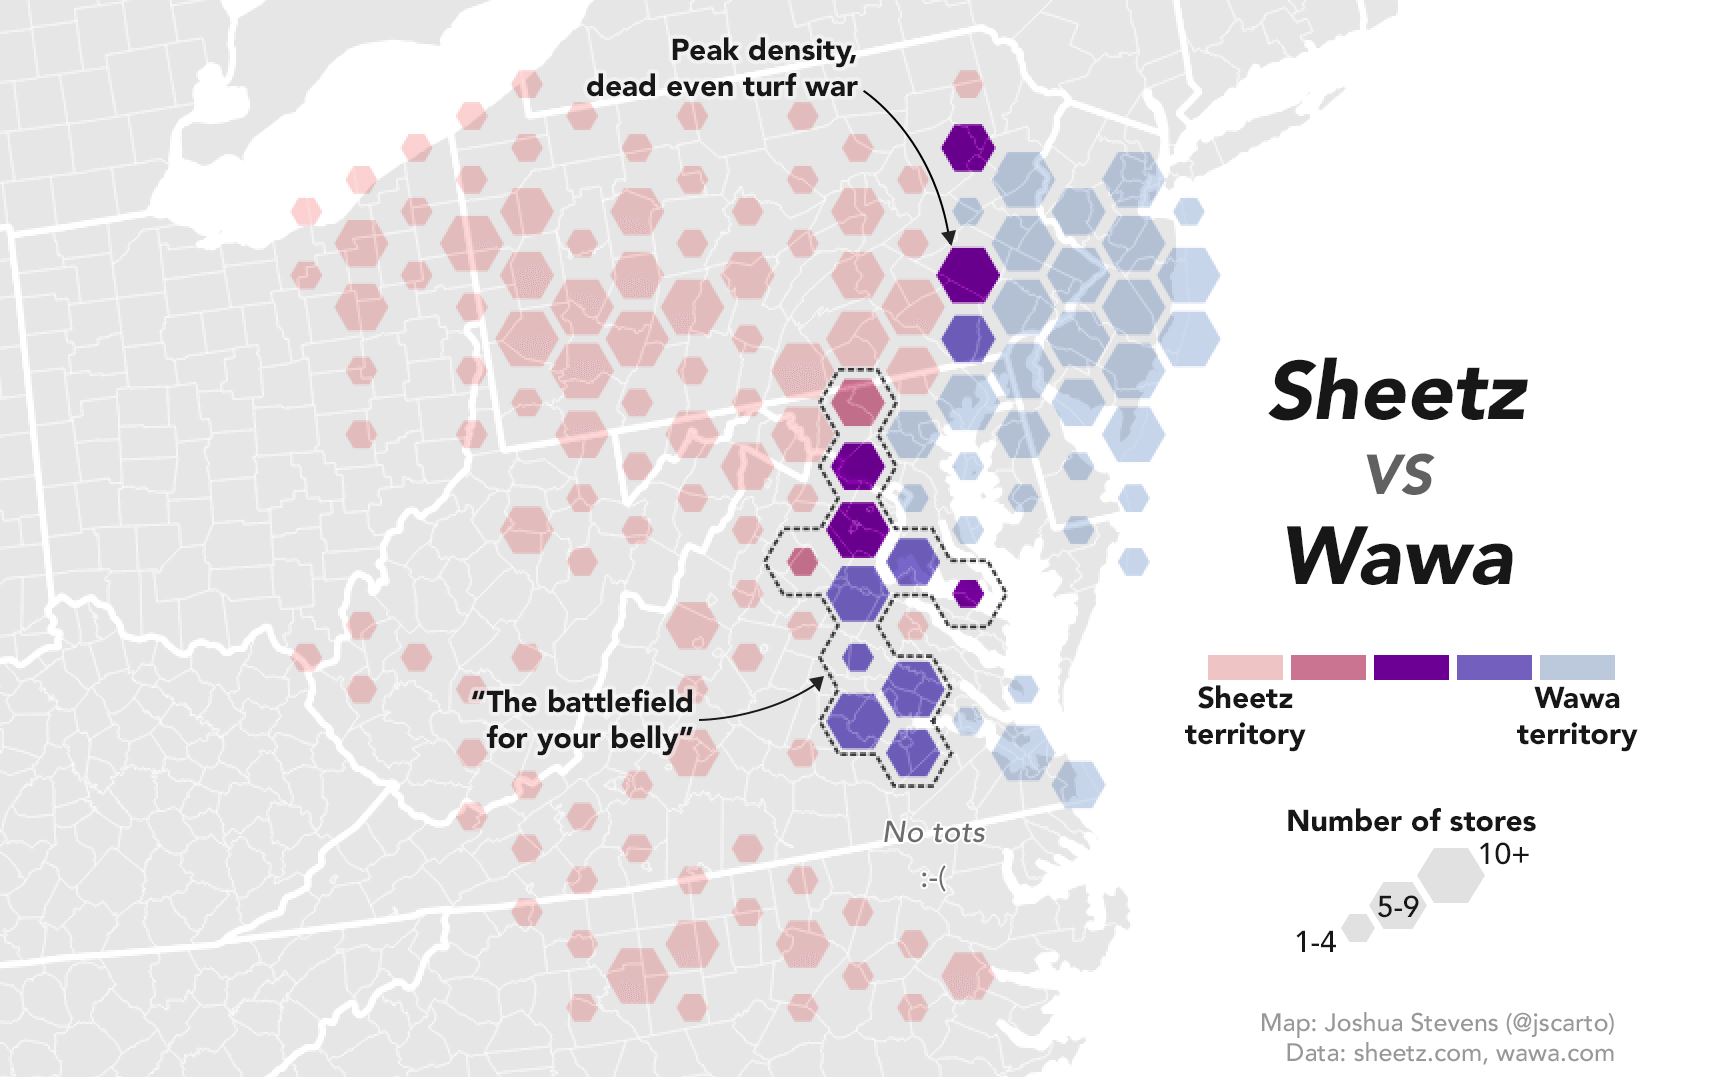 NASA Cartographer Weighs in on Wawa/Sheetz Turf War With a Twitter Store Map